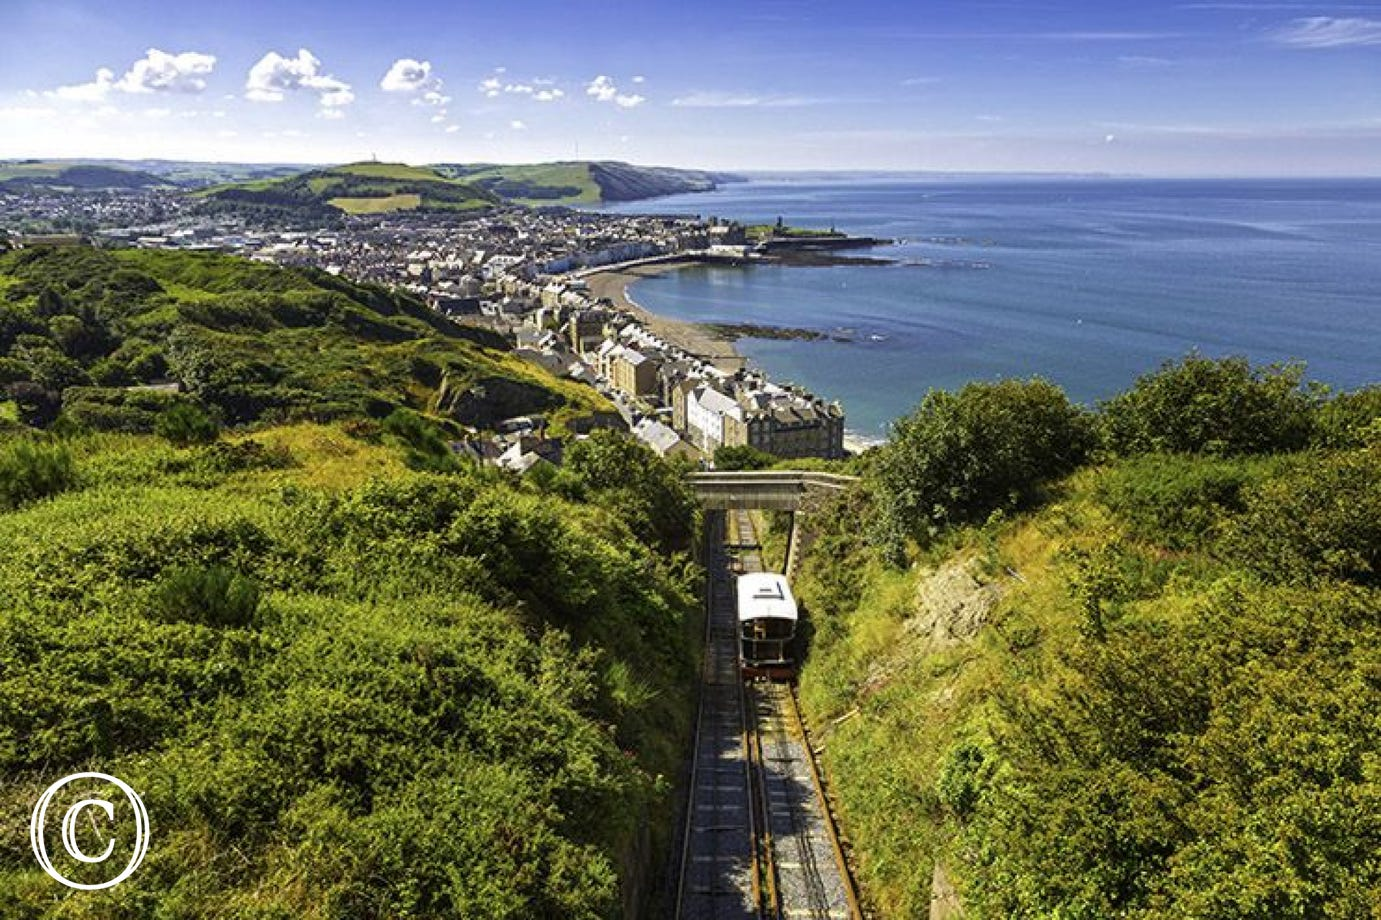 Aberystwyth's Cliff Railway climbing up Constitution Hill